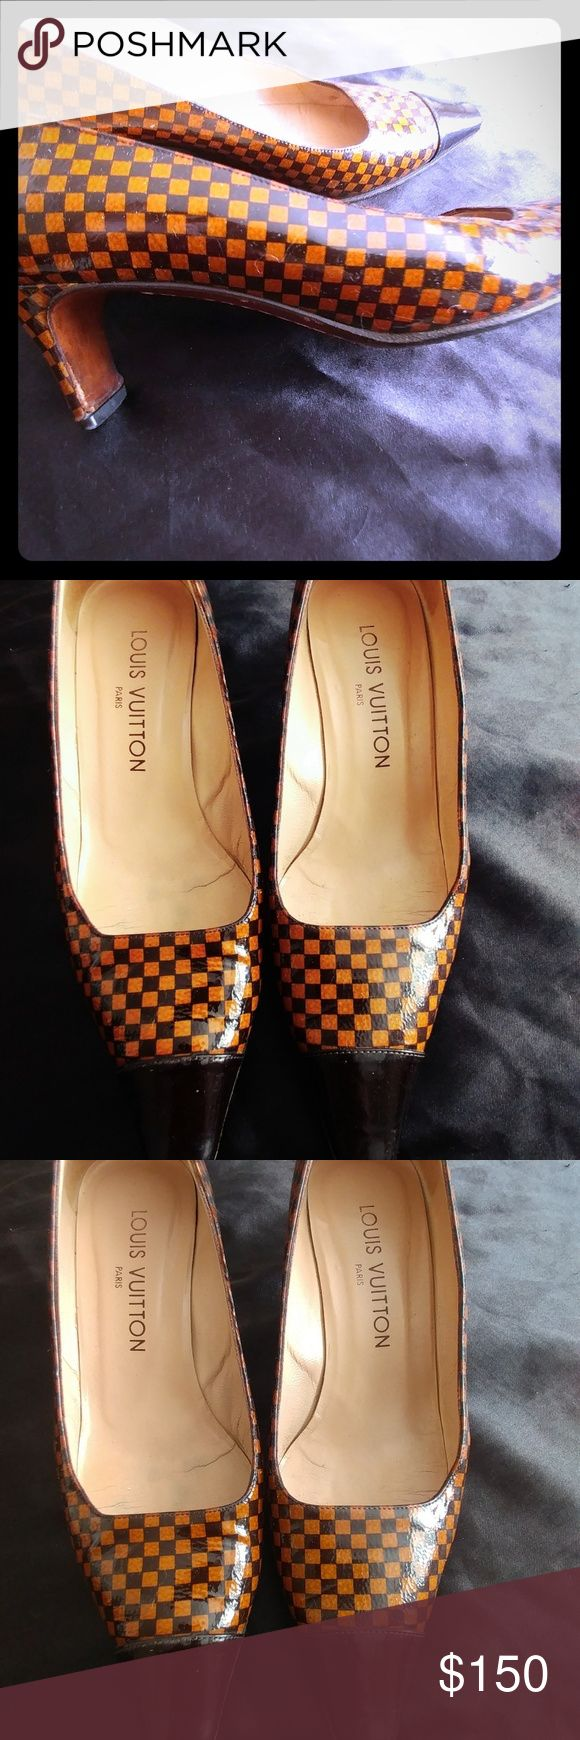 💞Authenic Louis Vuitton Damier pumps💞 Beautiful Authenic Louis Vuitton Damier pattern pumps. The heel is 2 inchs. Womens size 6. The bottoms have obvious signs of use which is great because no ones sees!! Thanks for looking! Take advantage of the great price on namebrand items!! Louis Vuitton Shoes Heels